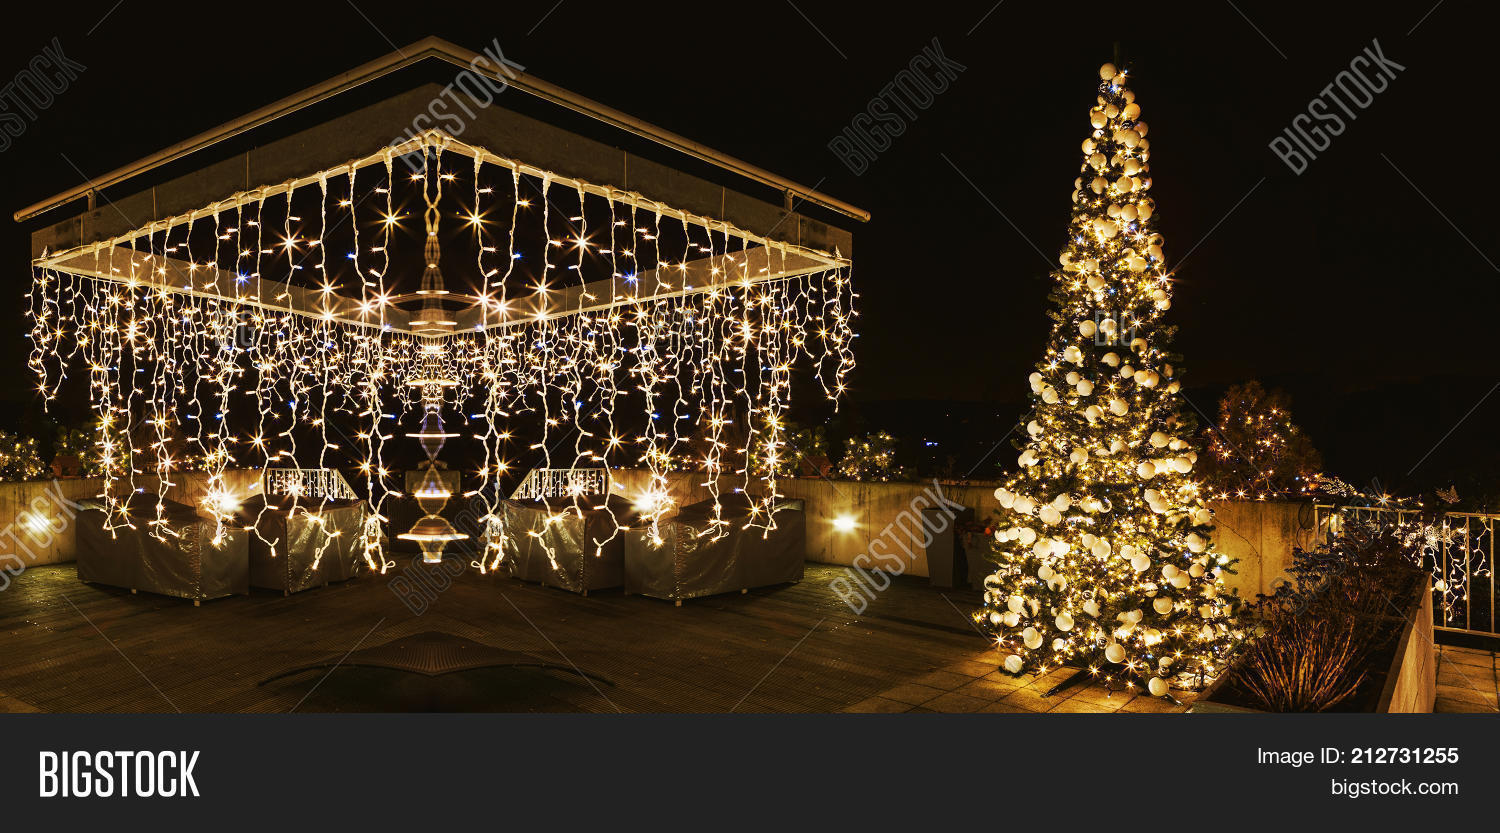 Engraved Christmas Tree And Pergola On The Terrace Of House Ornate Lighted